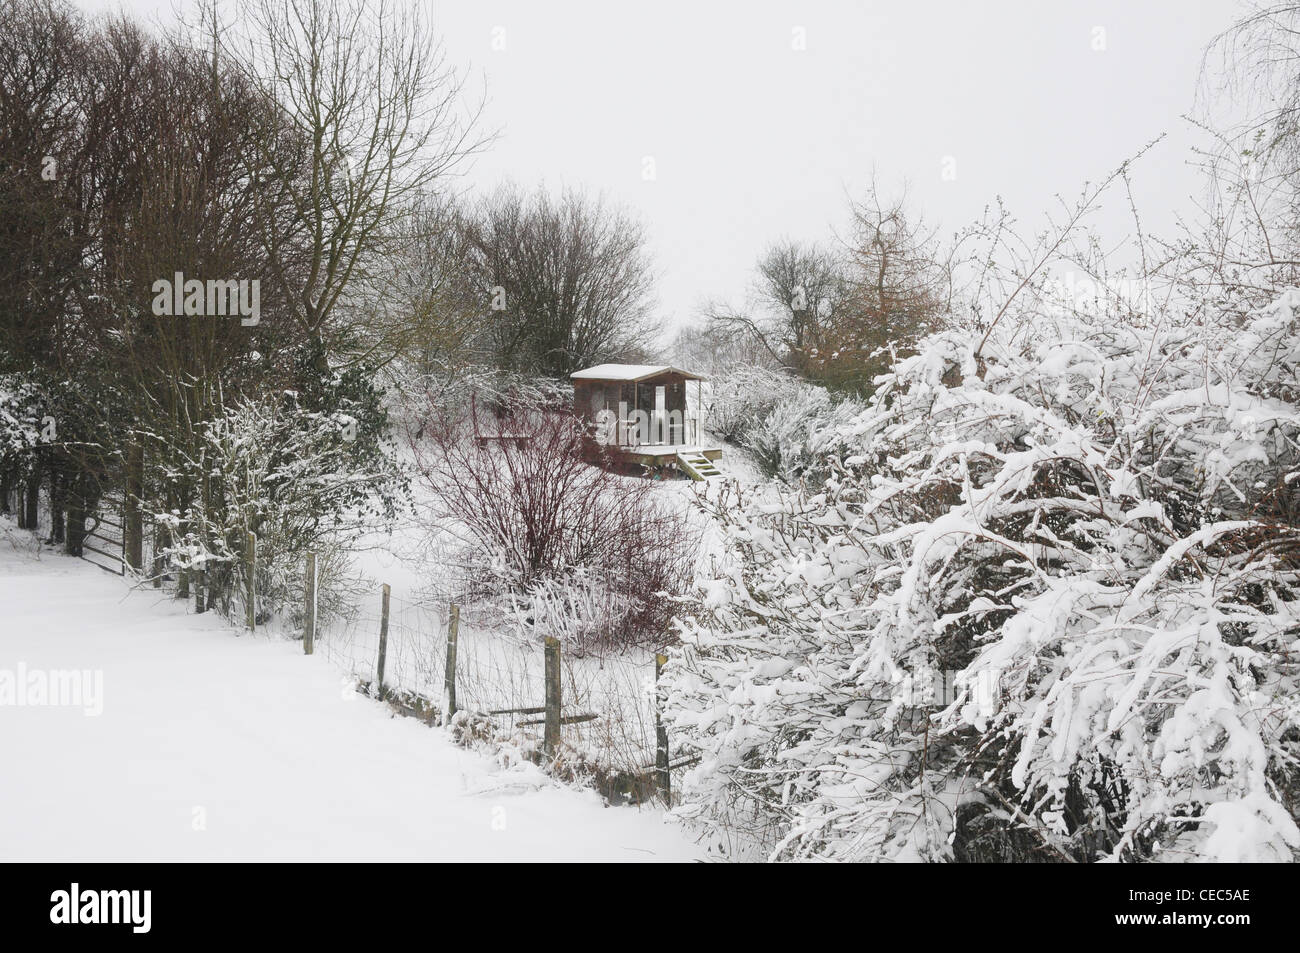 Summerhouse in snow white landscape, winter, England, UK - Stock Image